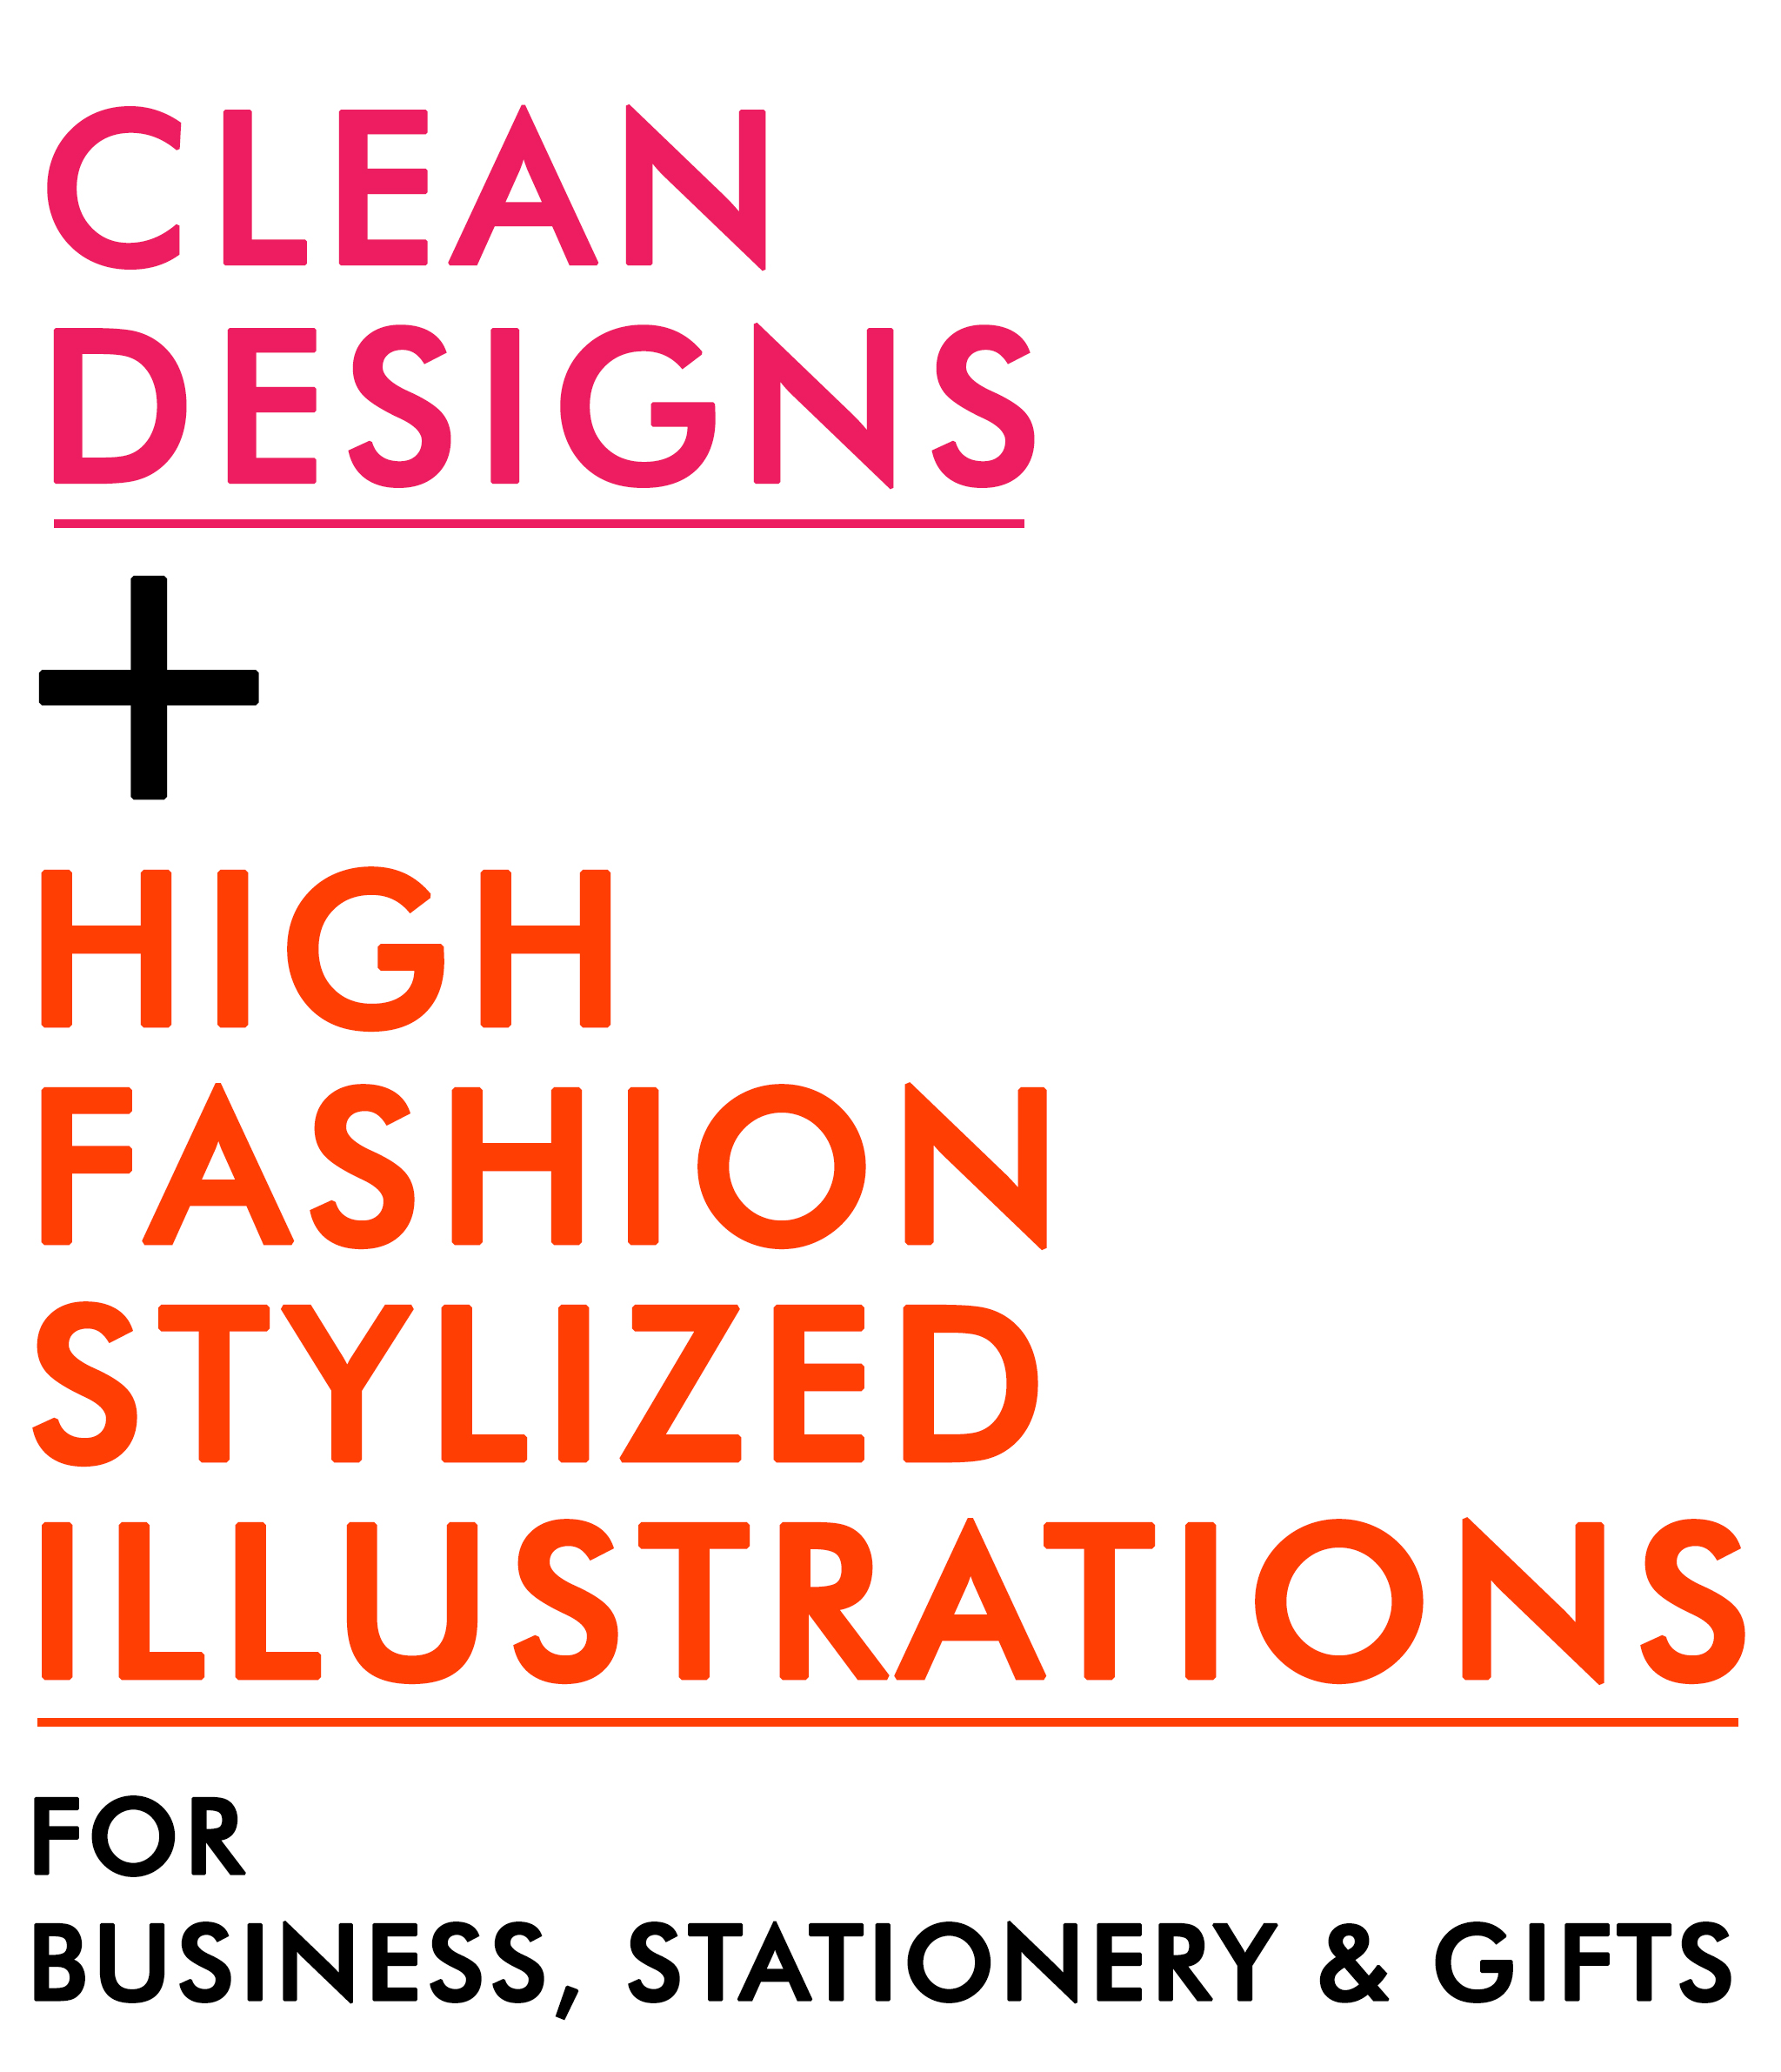 CLEAN DESIGNS (with tag line)